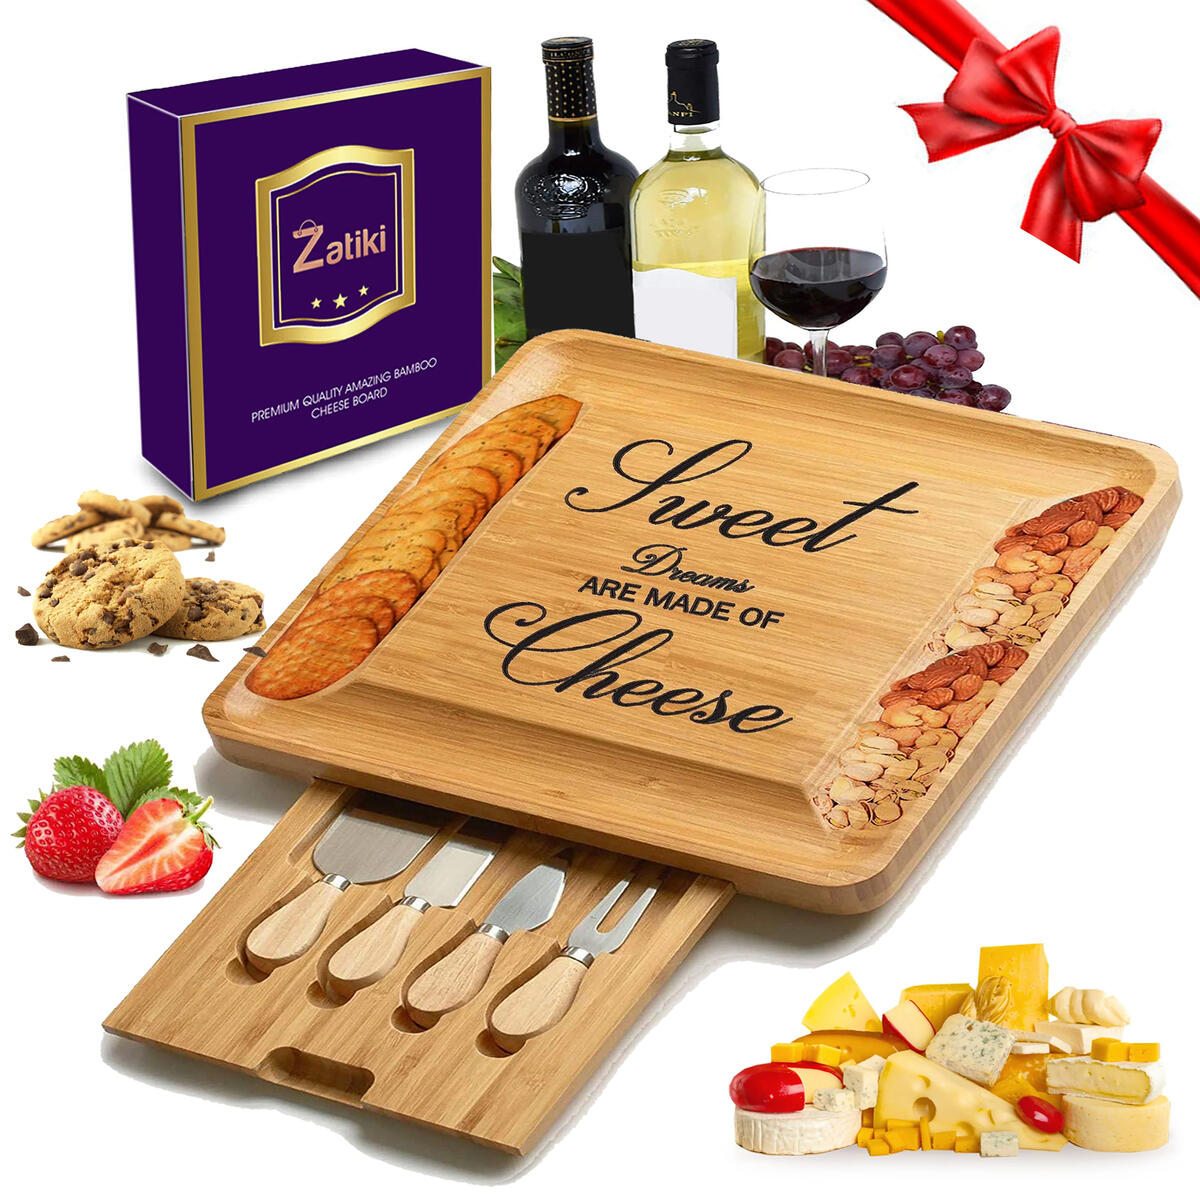 Bamboo Cheese Board and Knife Set Wood Charcuterie Platter Serving Tray with Cutlery in Slide-Out Drawer for Cheese, Wine, Meat(I Love You Mom)